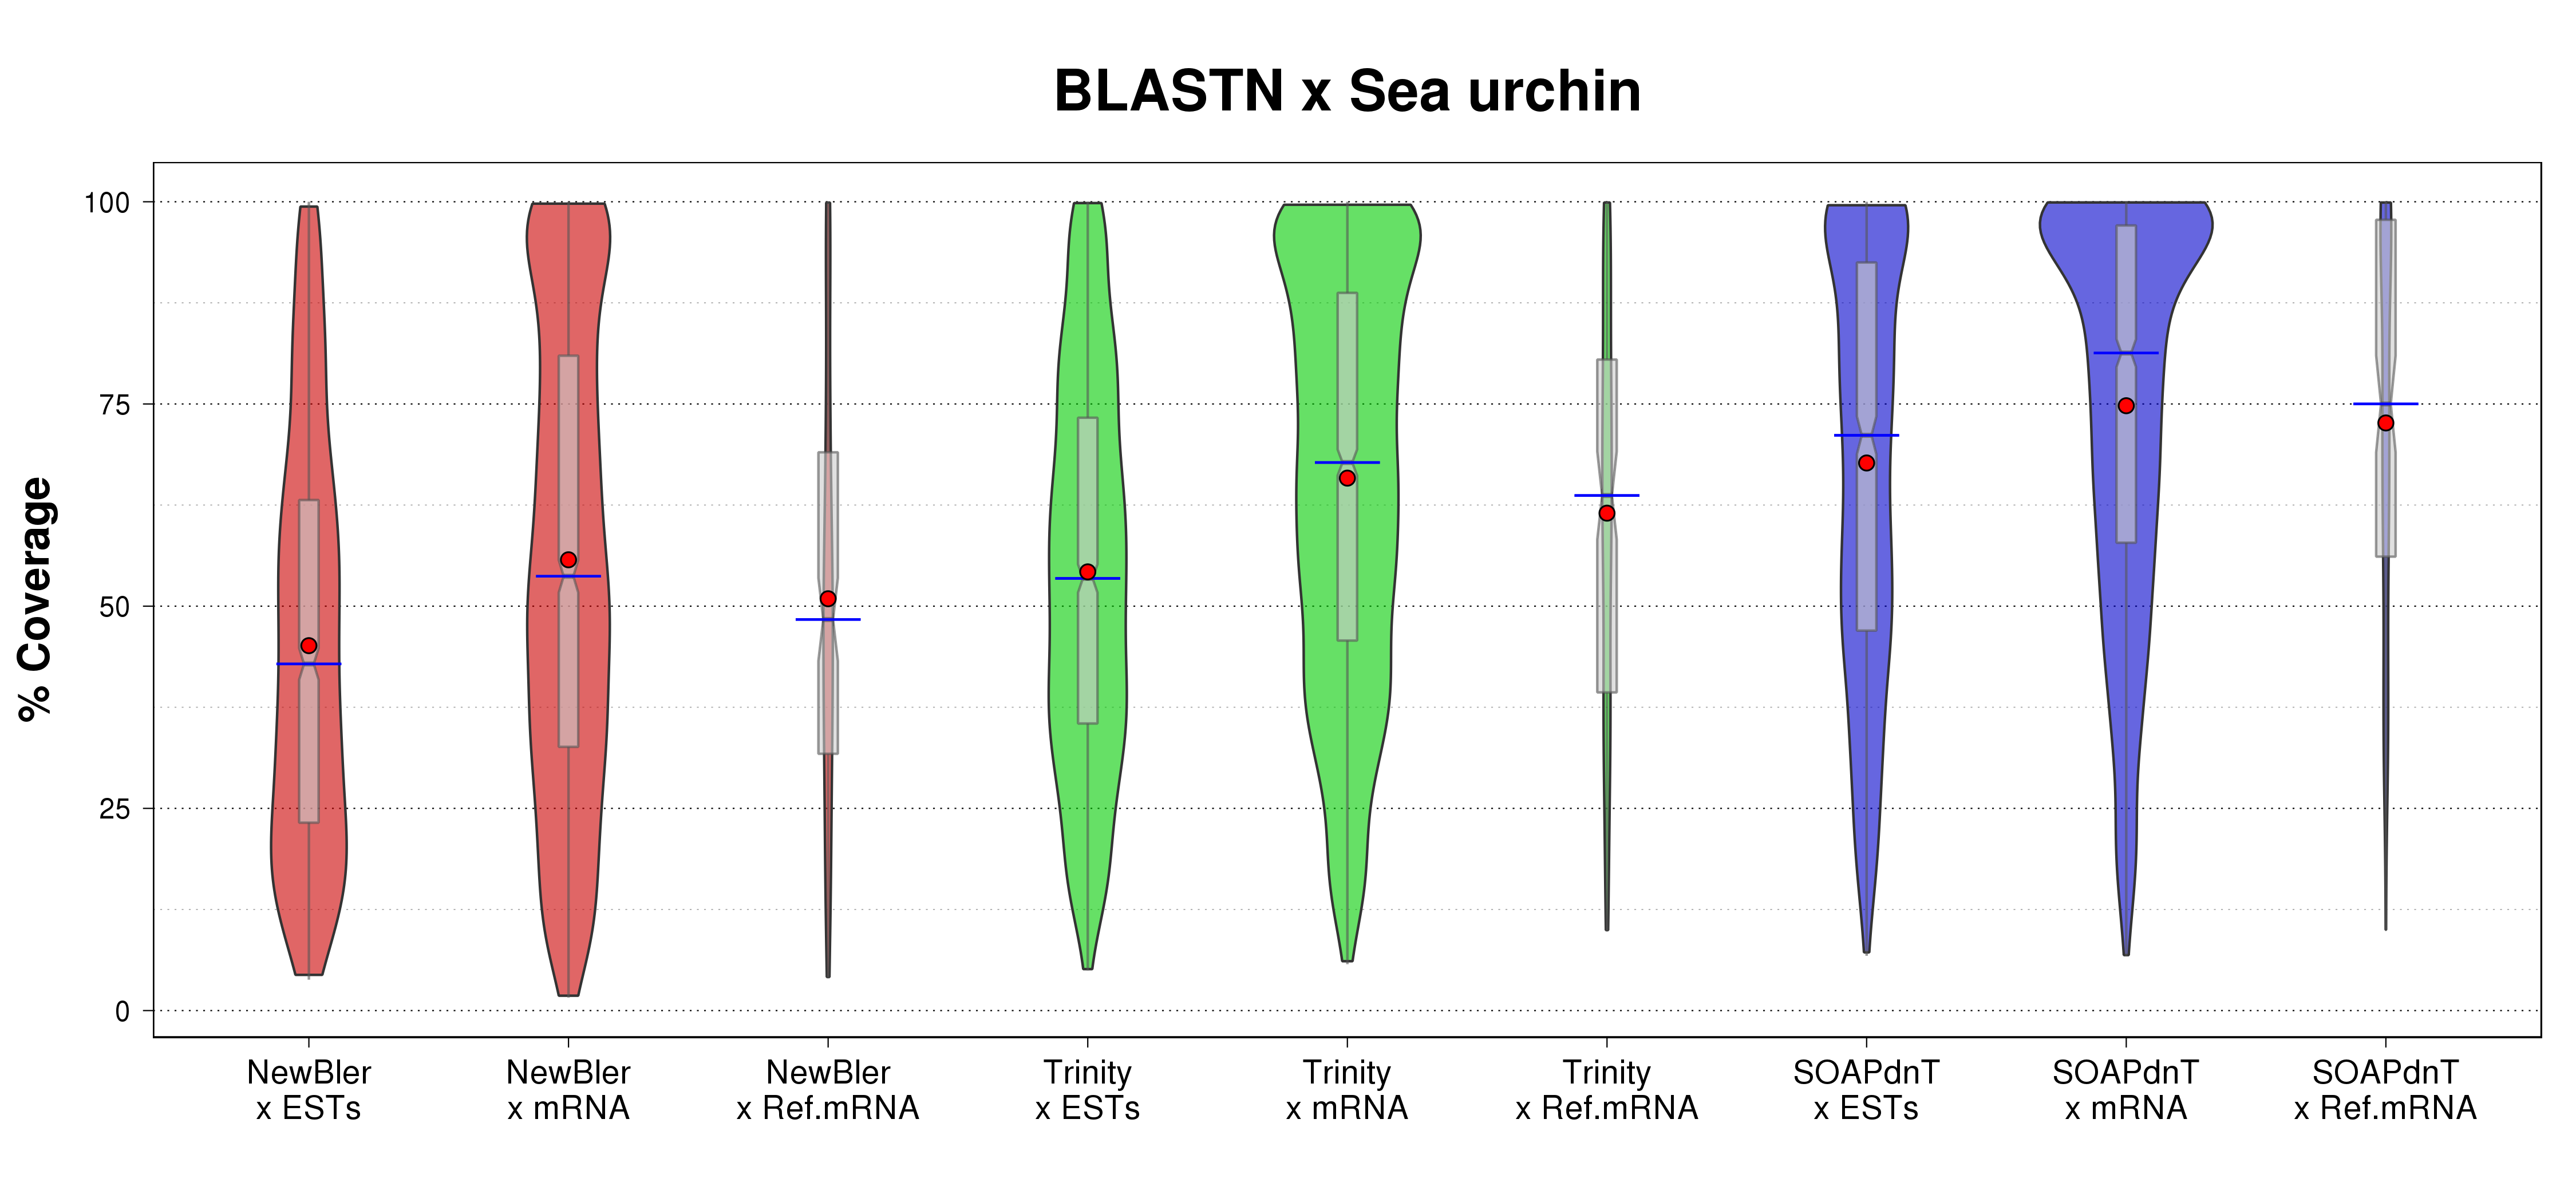 Violin plots comparison of assembled transcripts (on all three sets NewBler, Trinity, and SOAPdenovo-Trans) %coverage for the BLASTN search over sea urchin transcriptome.